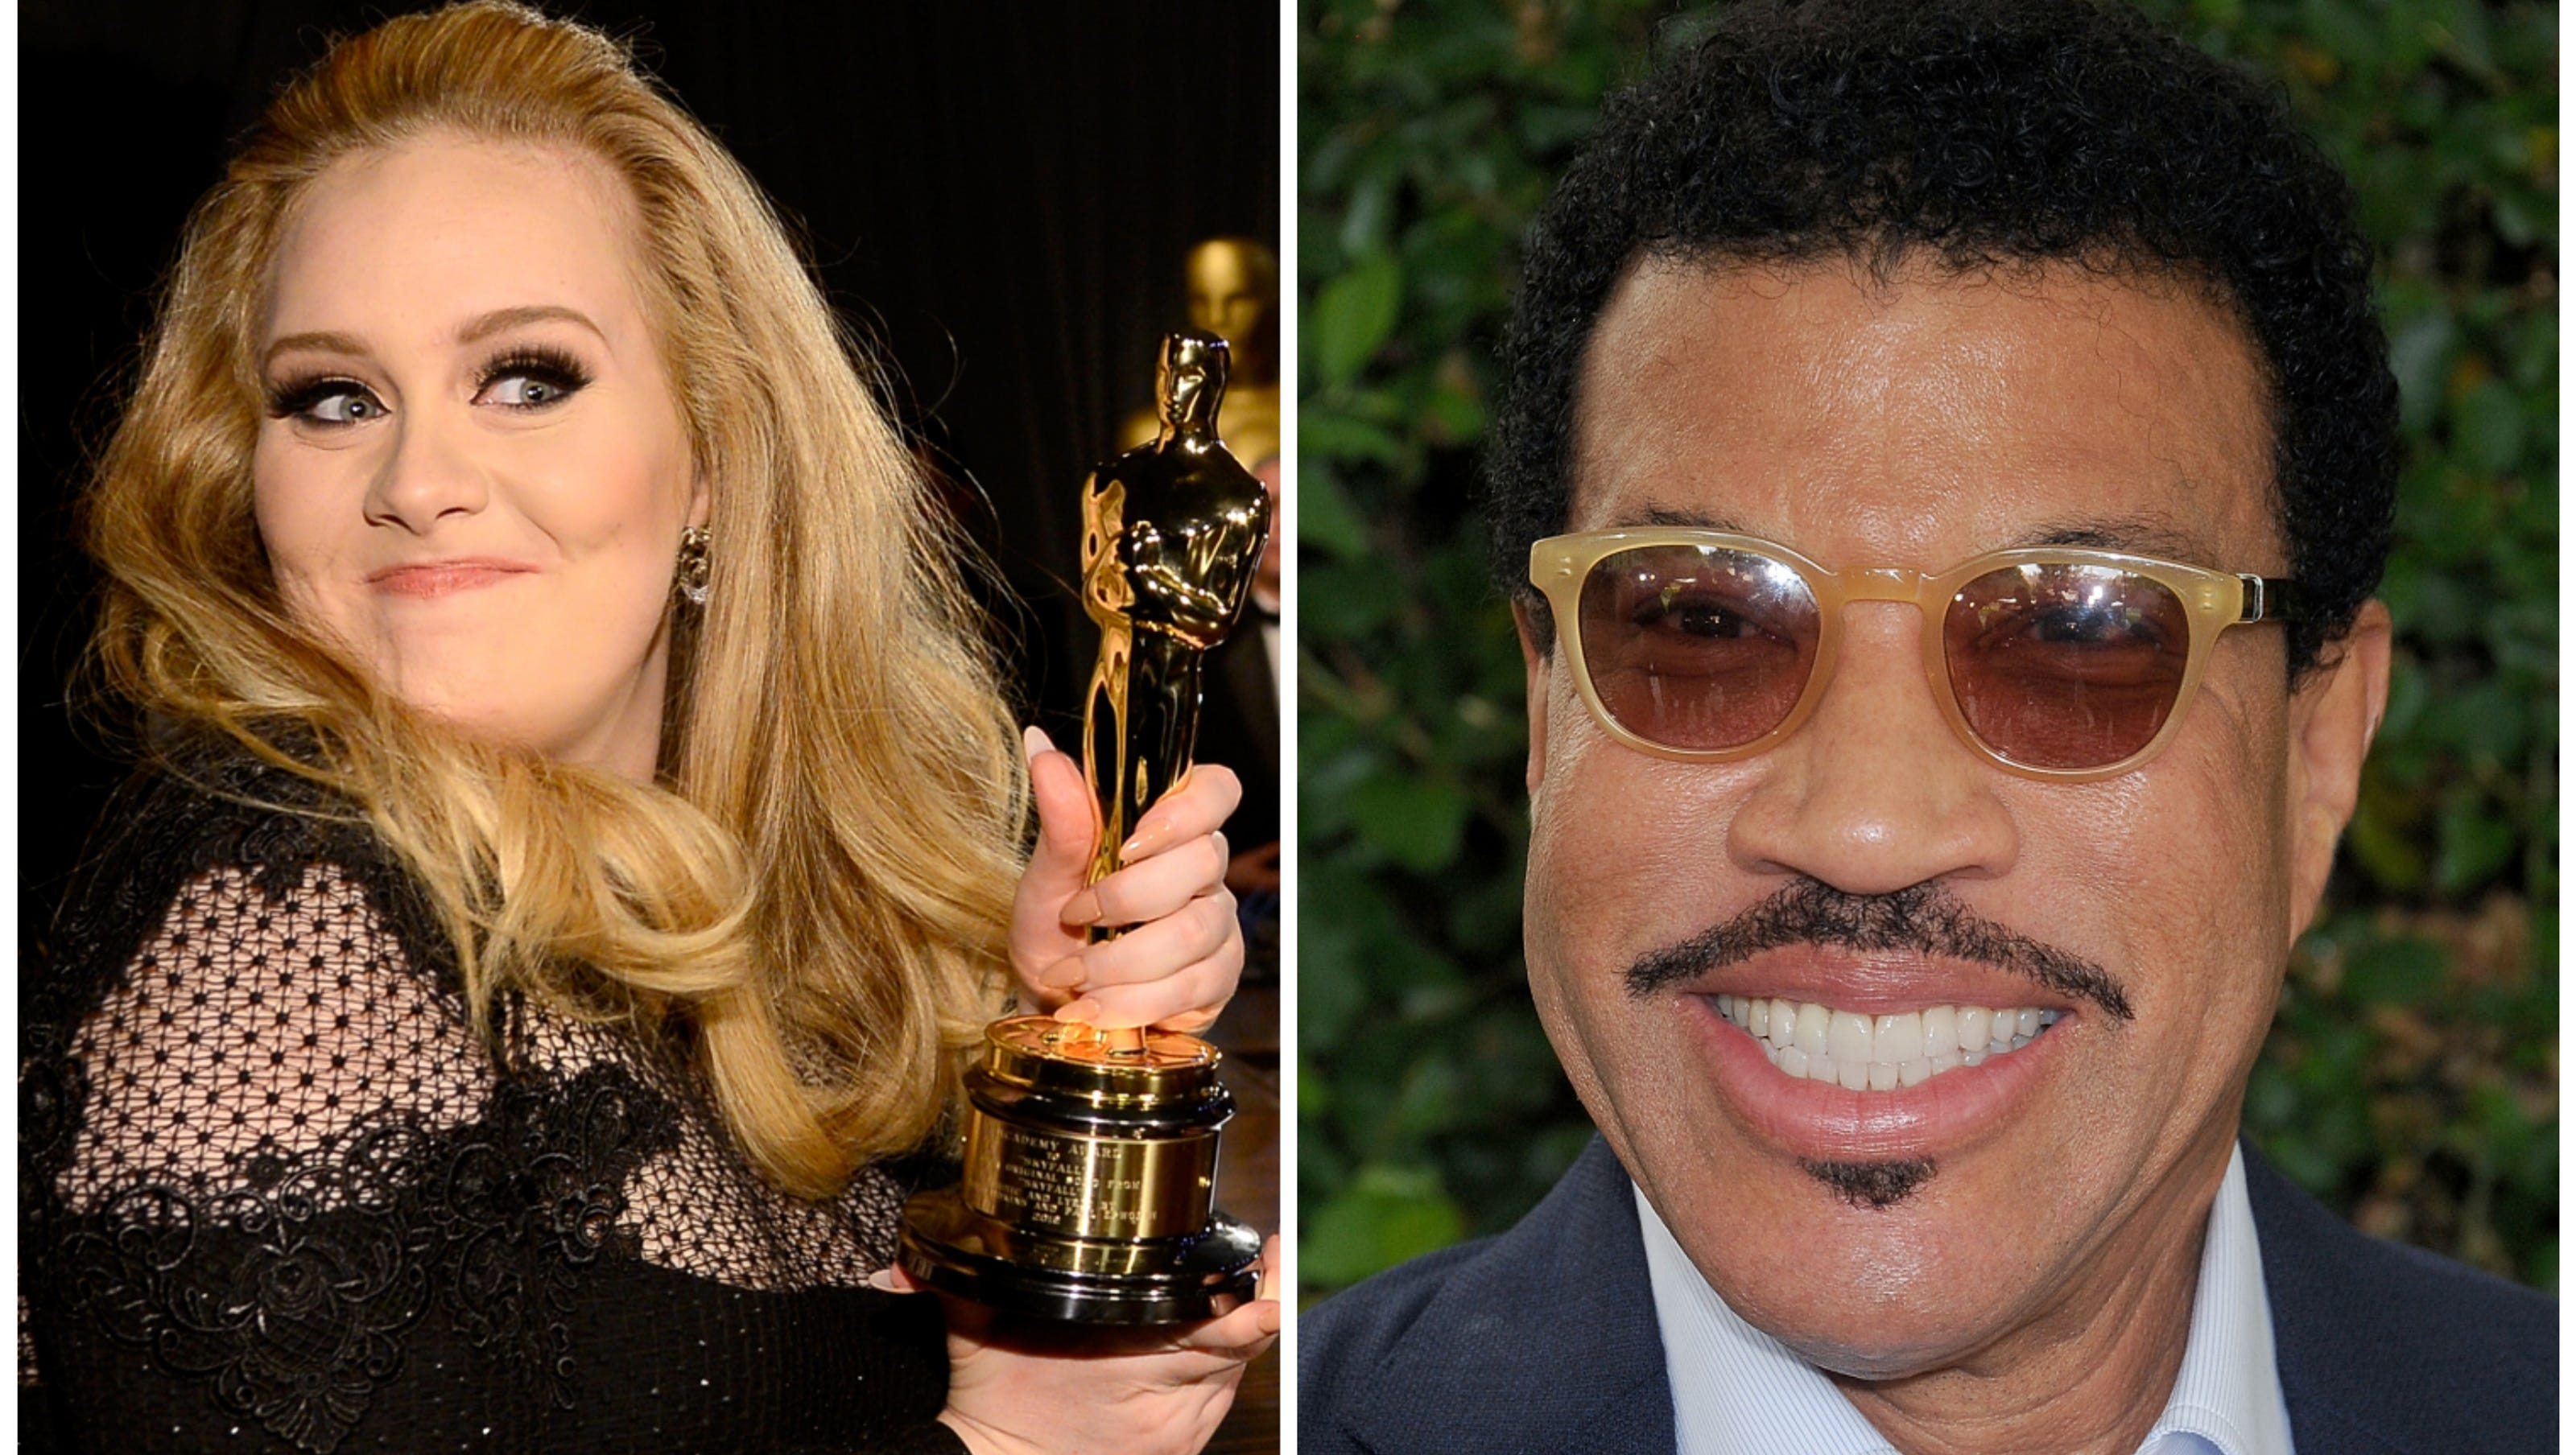 You Knew This Adelelionel Richie Meme Was Coming